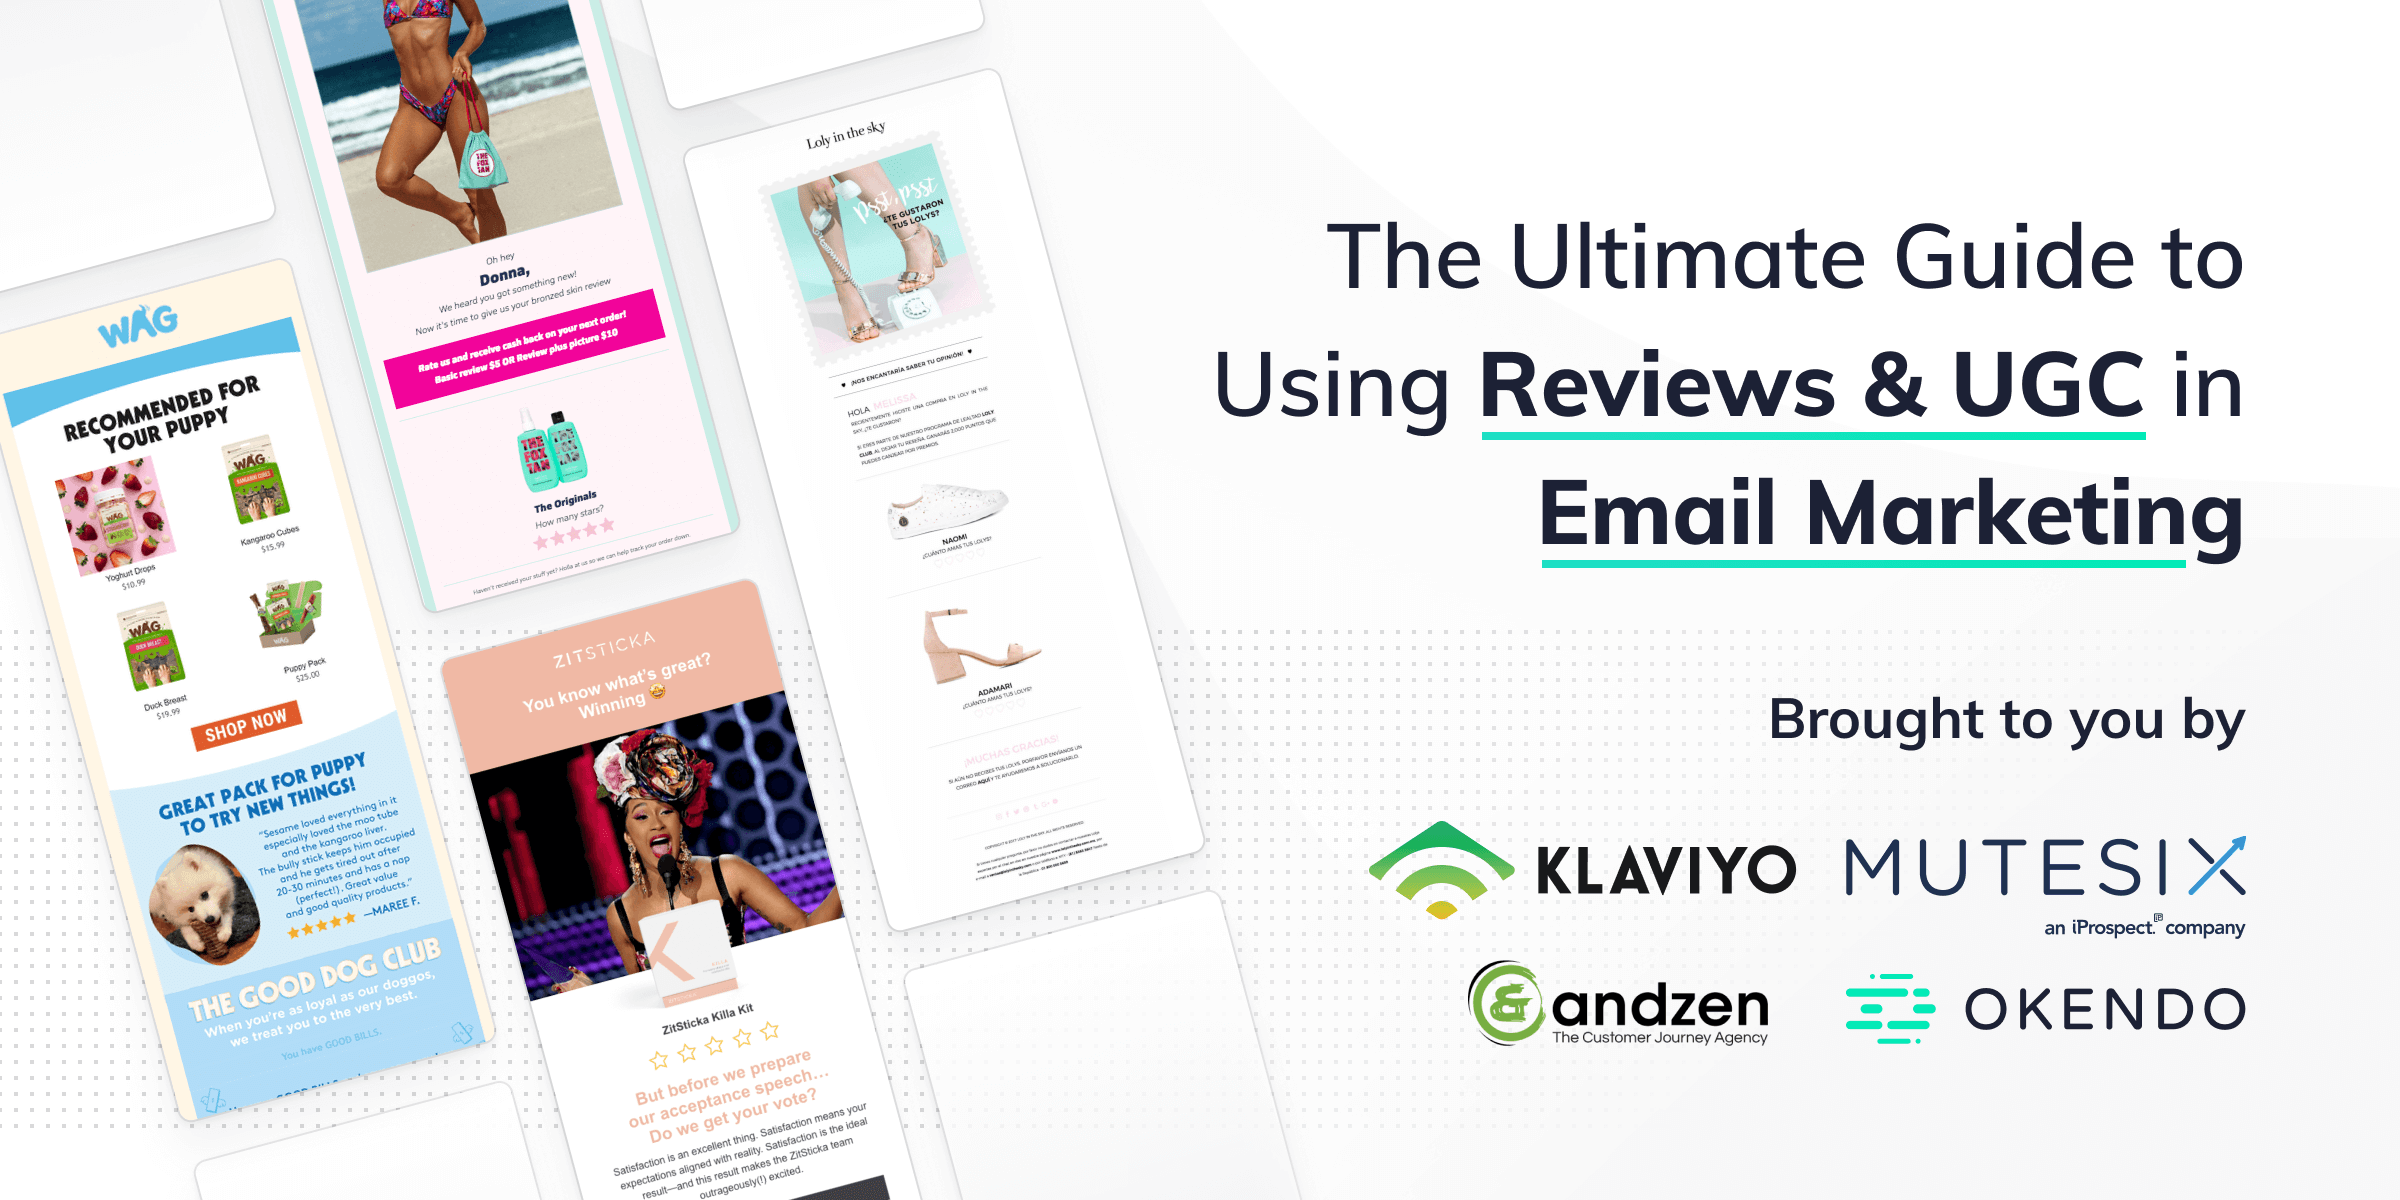 The Ultimate Guide to Using Reviews & UGC in Email Marketing